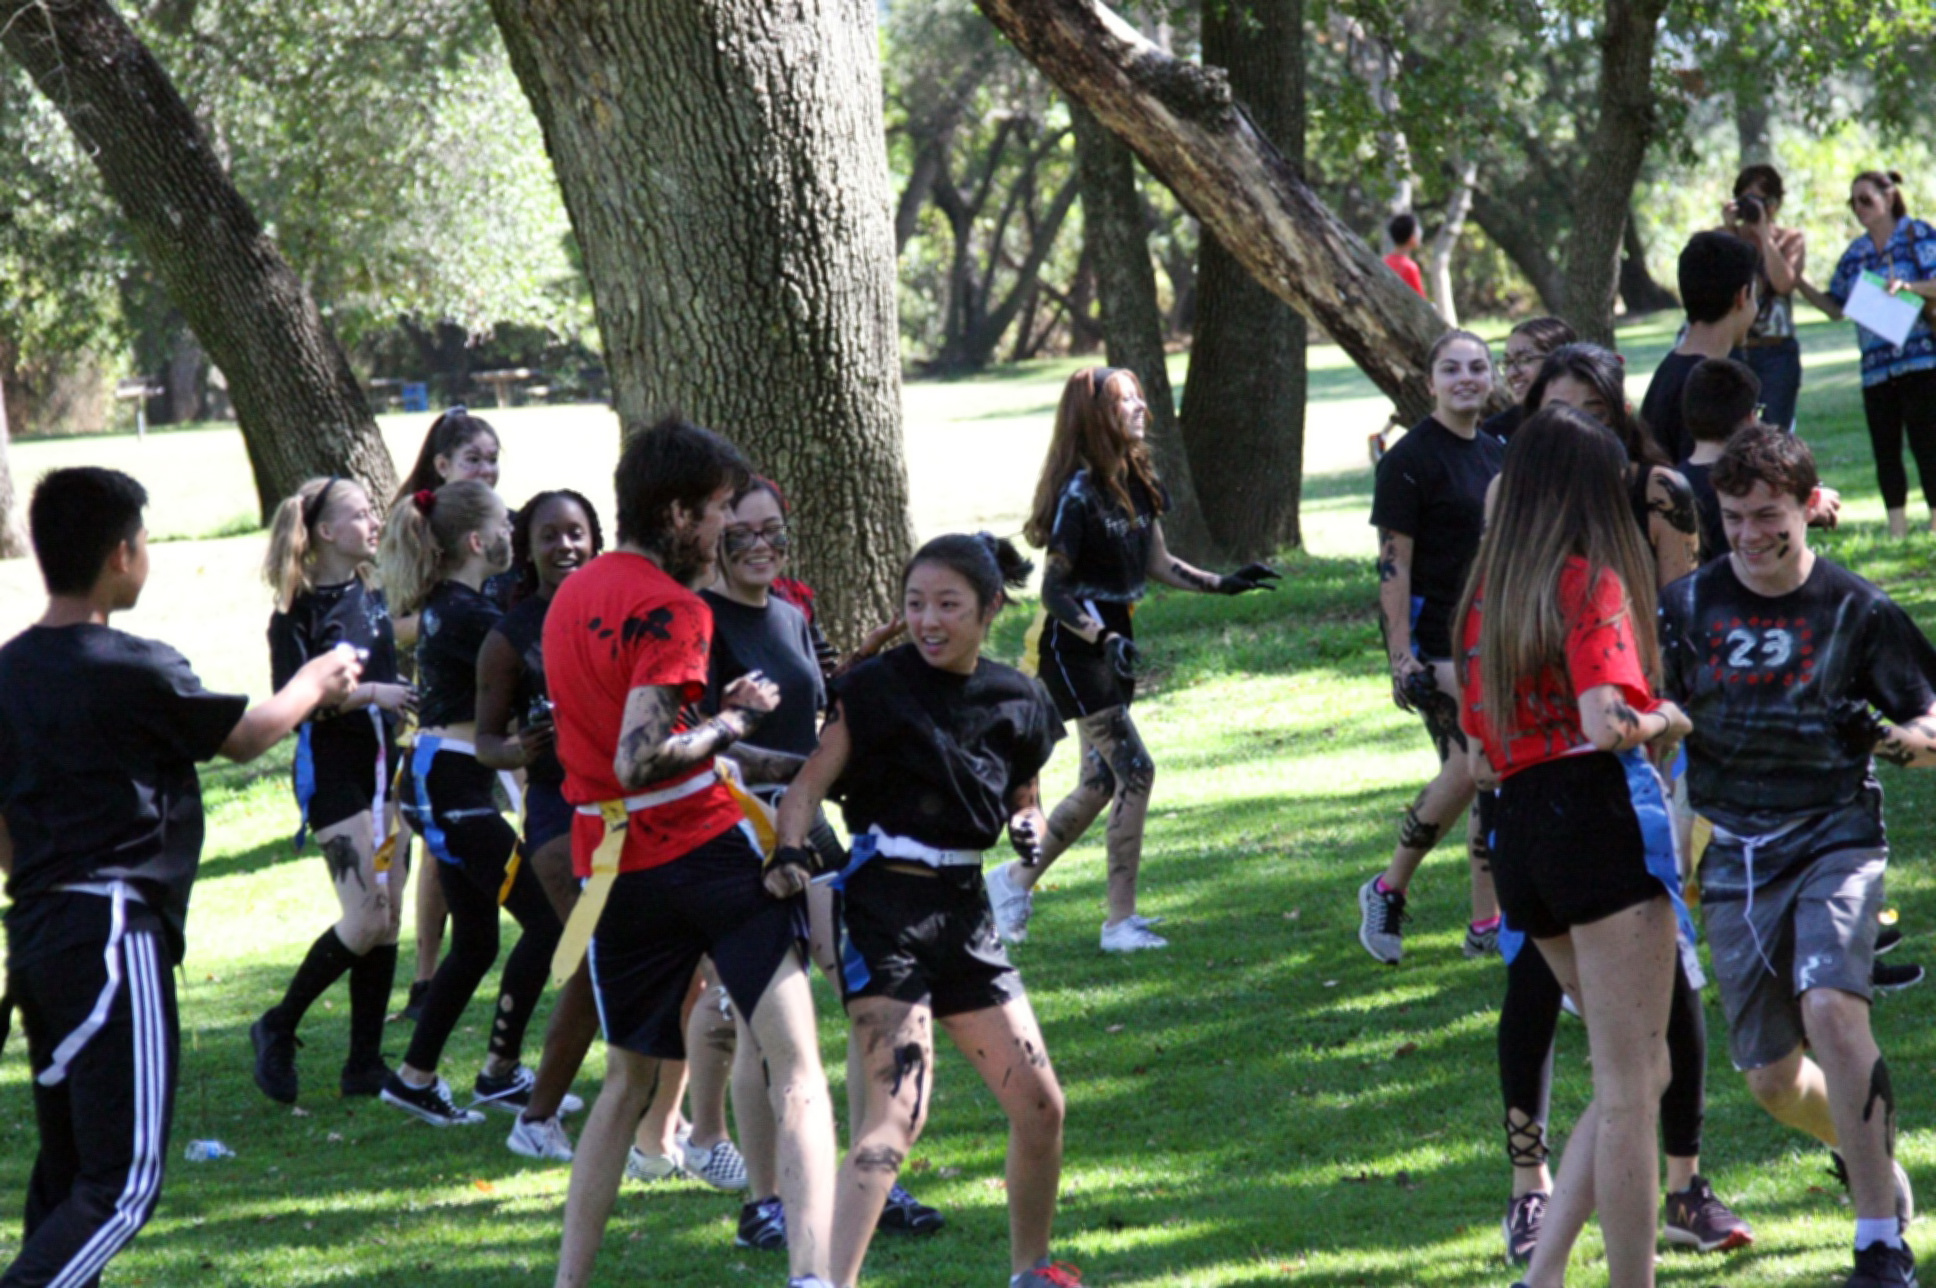 Members of the Black Team attack the Red Team with paint. (Photo by Shimin Zhang)